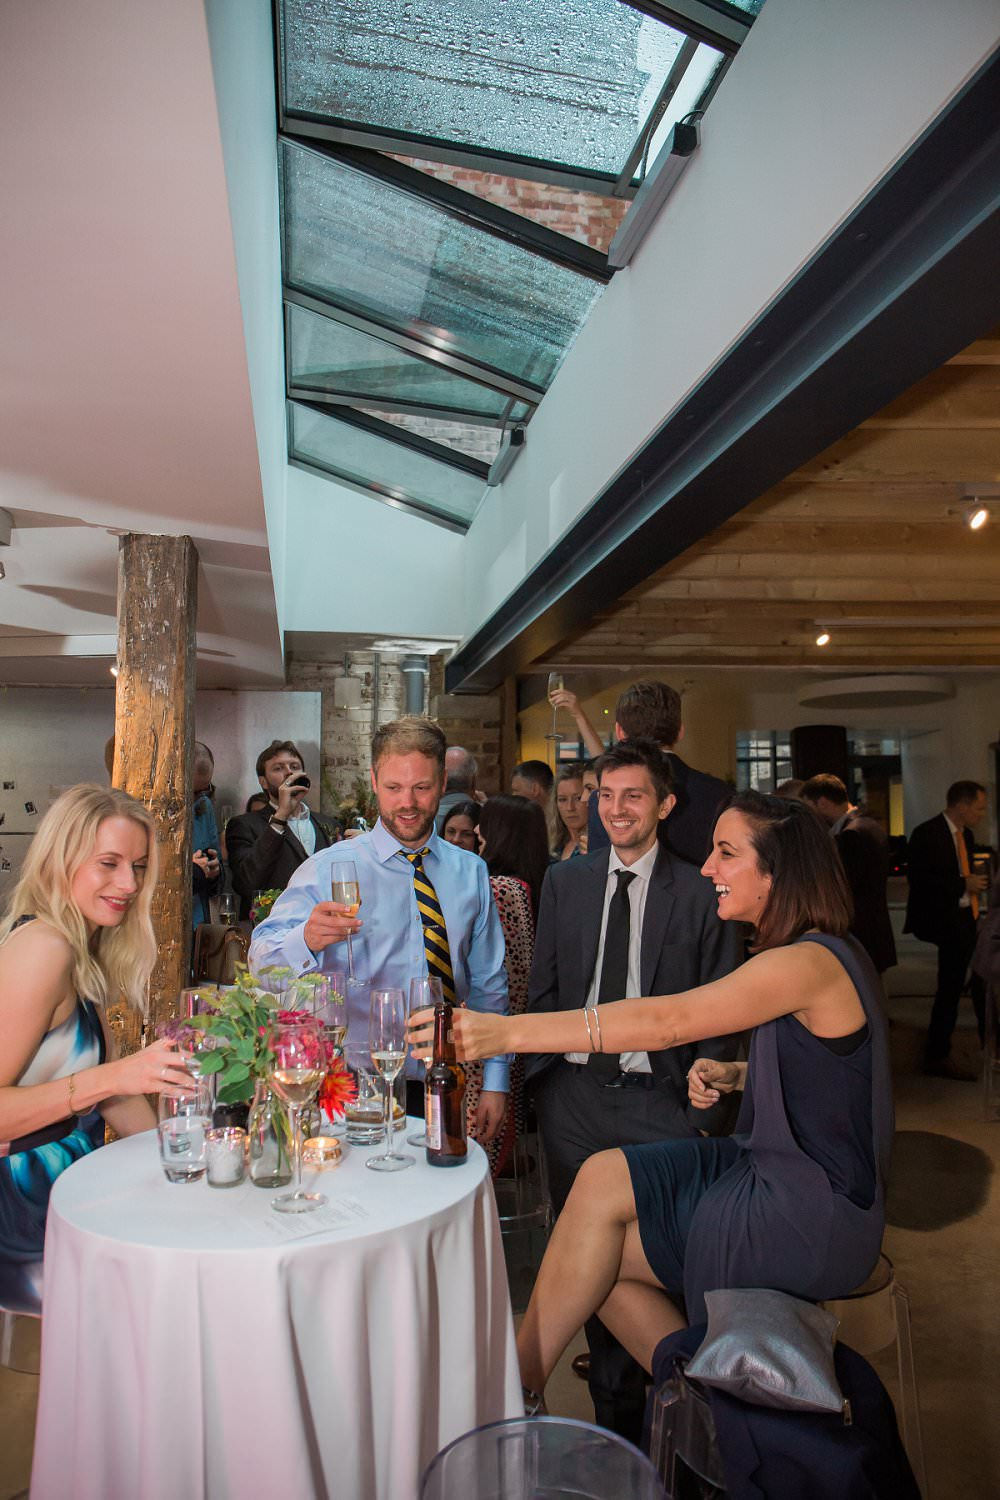 guests enjoy wedding party in London